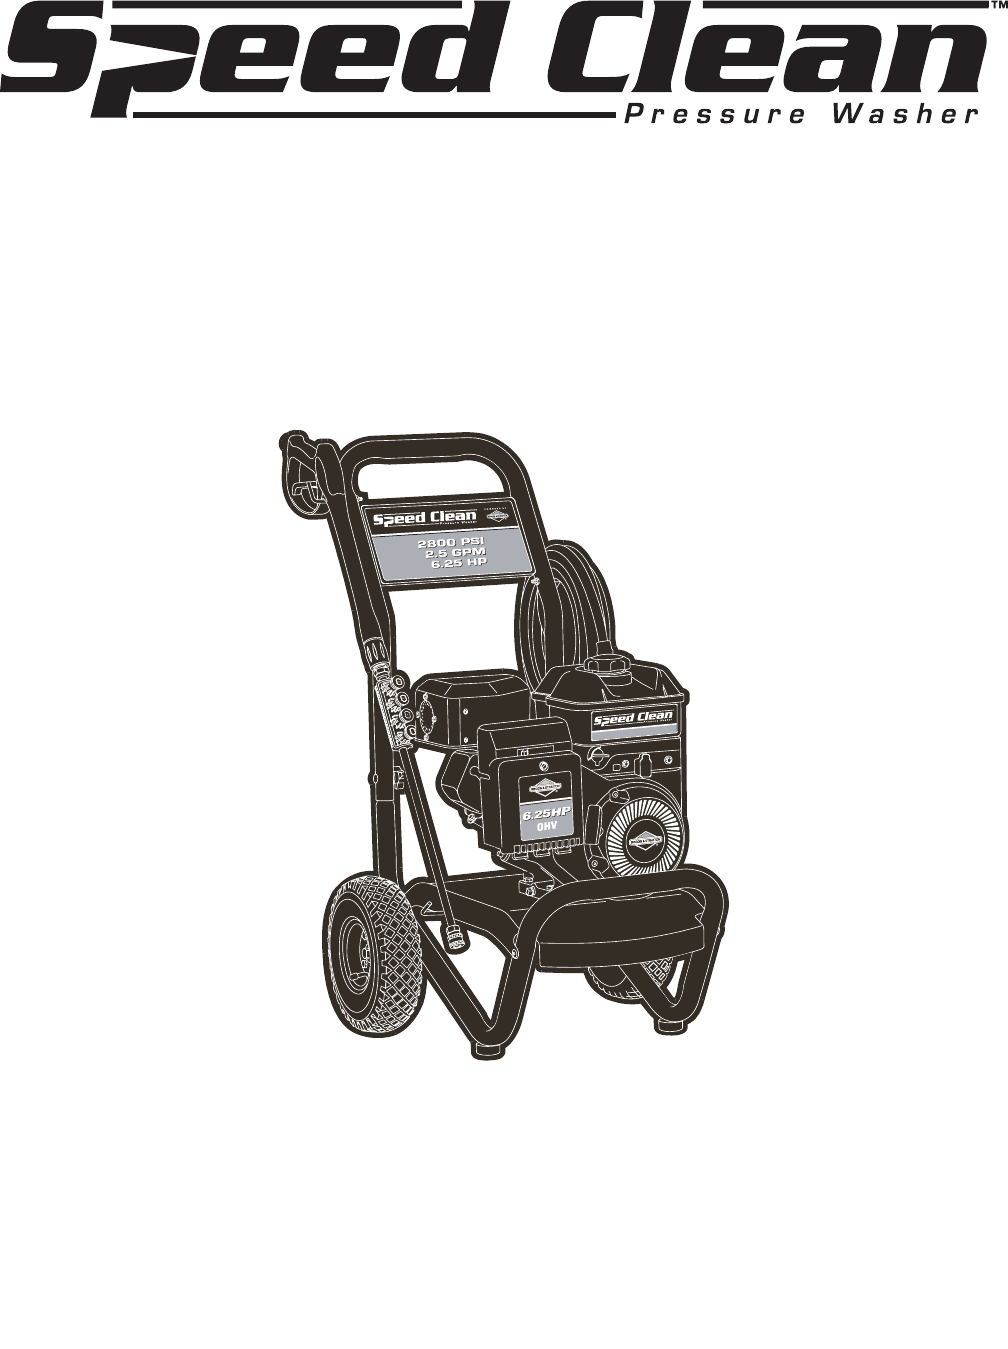 Briggs & Stratton Pressure Washer 020212-1 User Guide